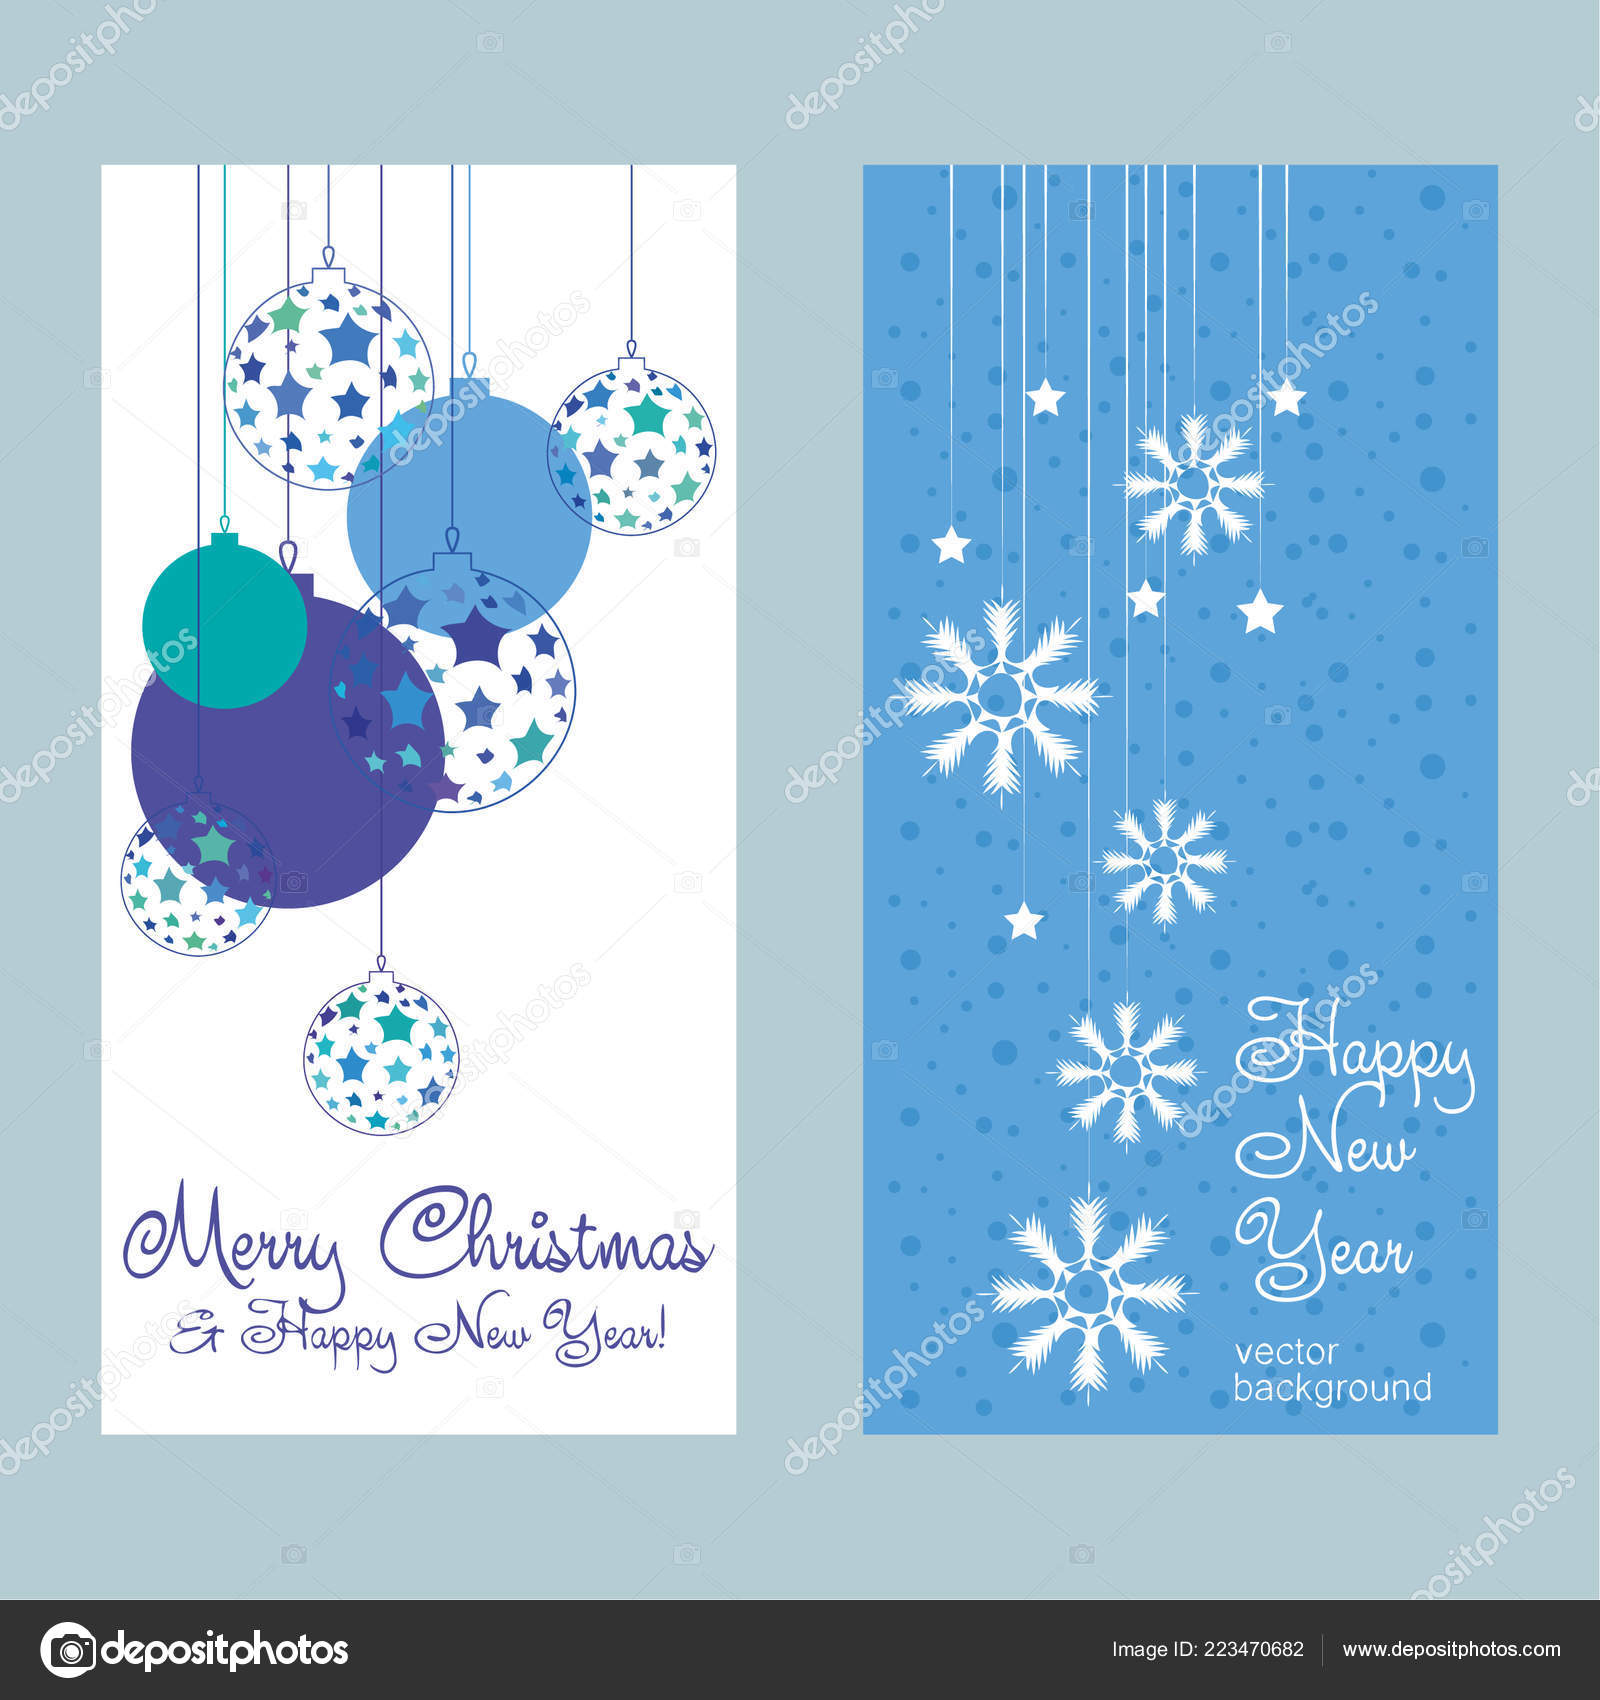 New Year vector greeting card, holiday background